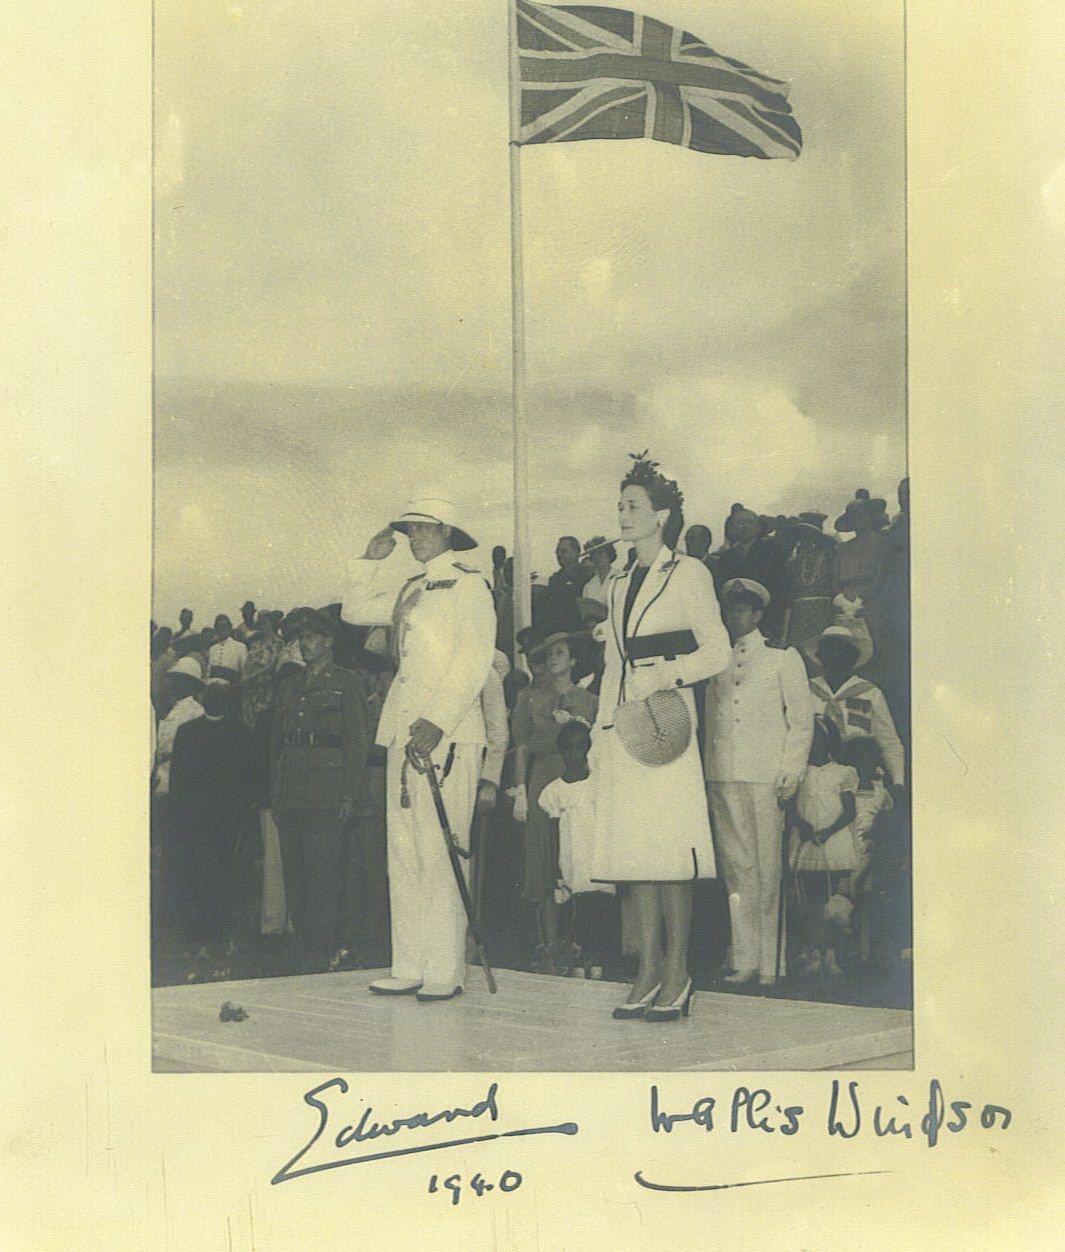 Bahamians welcome the Duke and Duchess of Windsor to The Bahamas